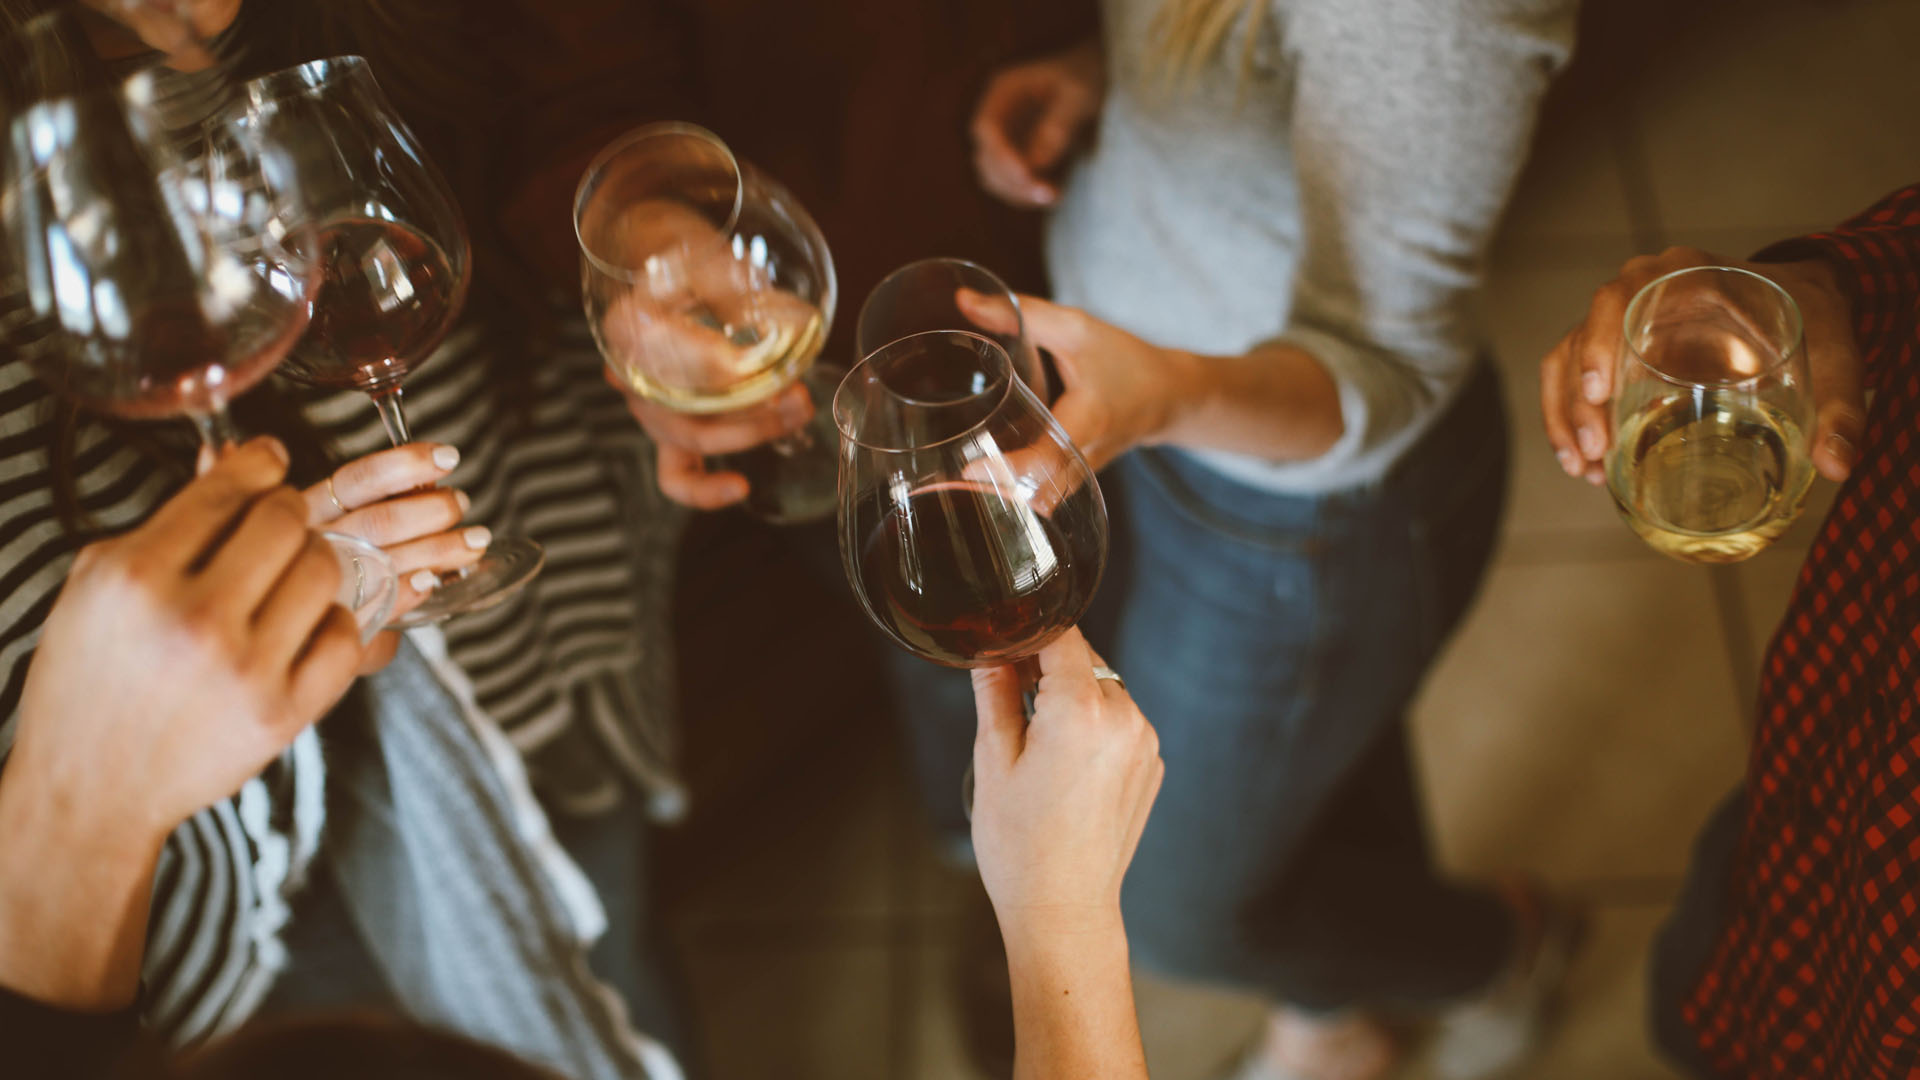 Photograph of six people holding wine glassing making a toast